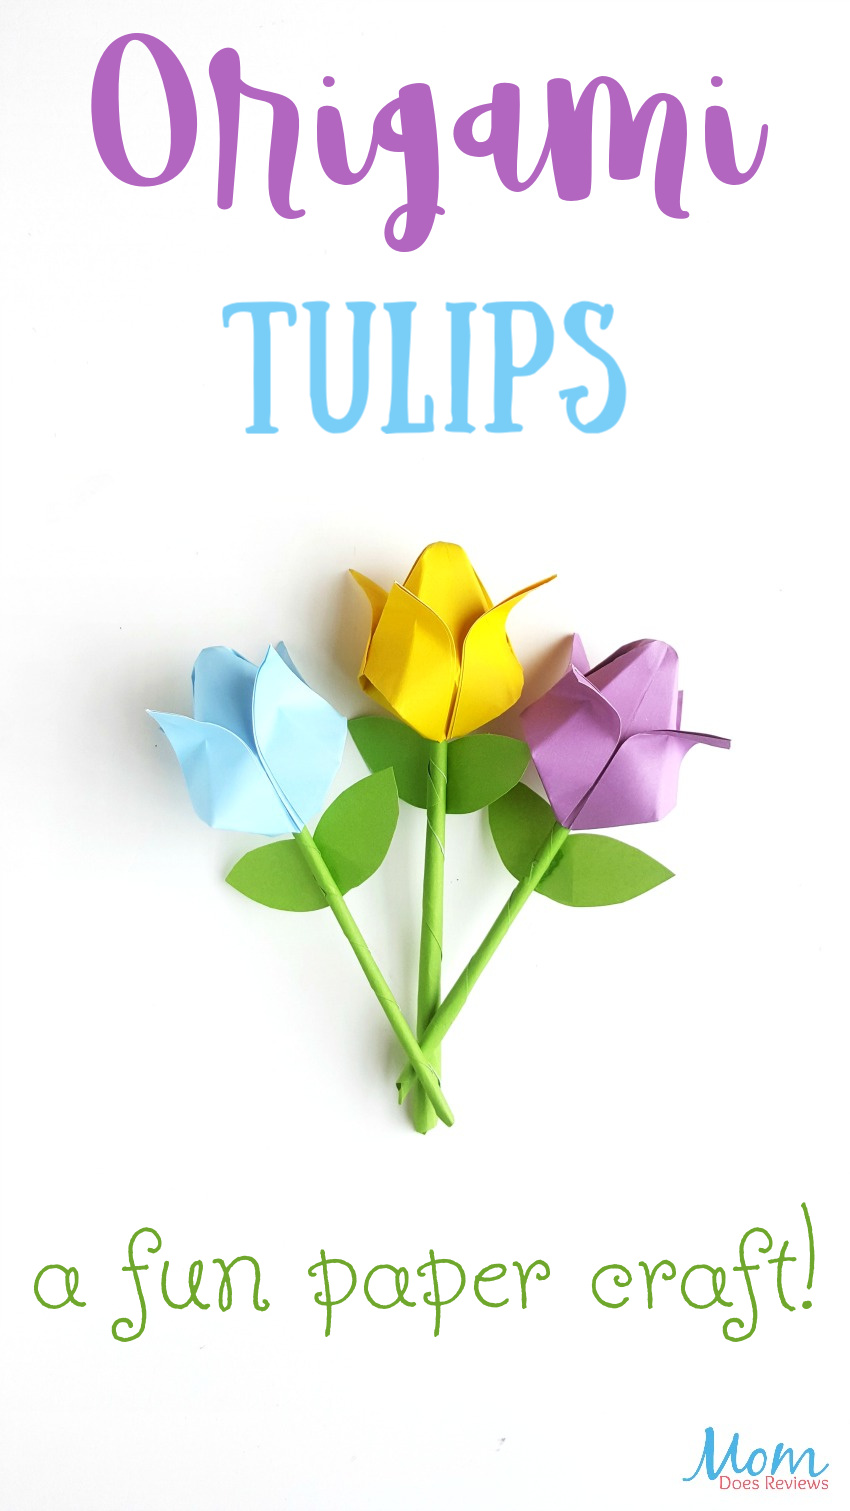 Origami Tulips: A Fun Paper Craft! #crafts #flowers #origami #papercraft #funstuff #mothersday